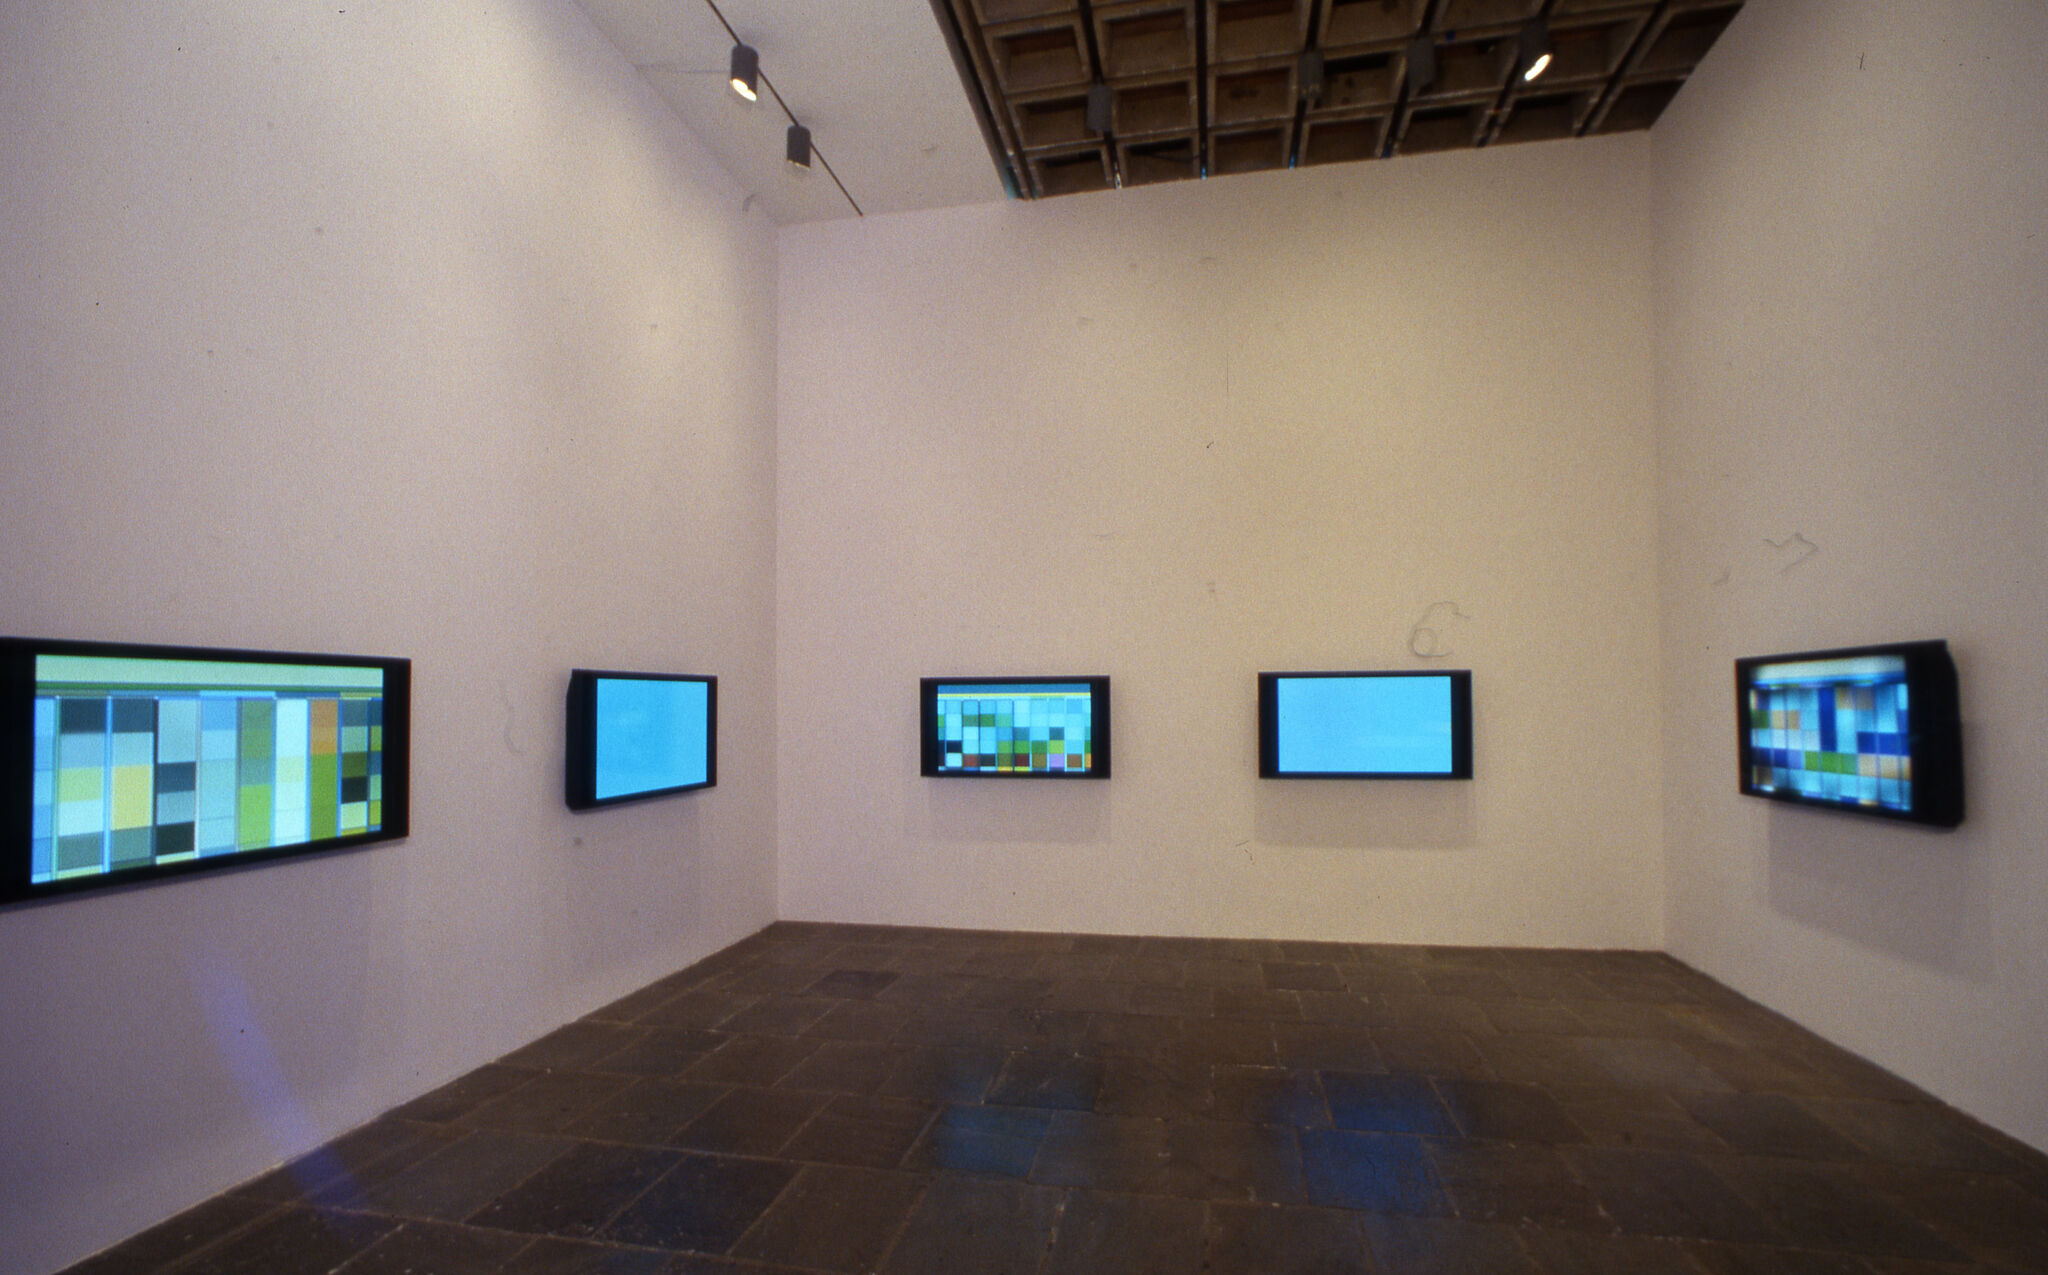 A gallery filled with monitors on the walls.